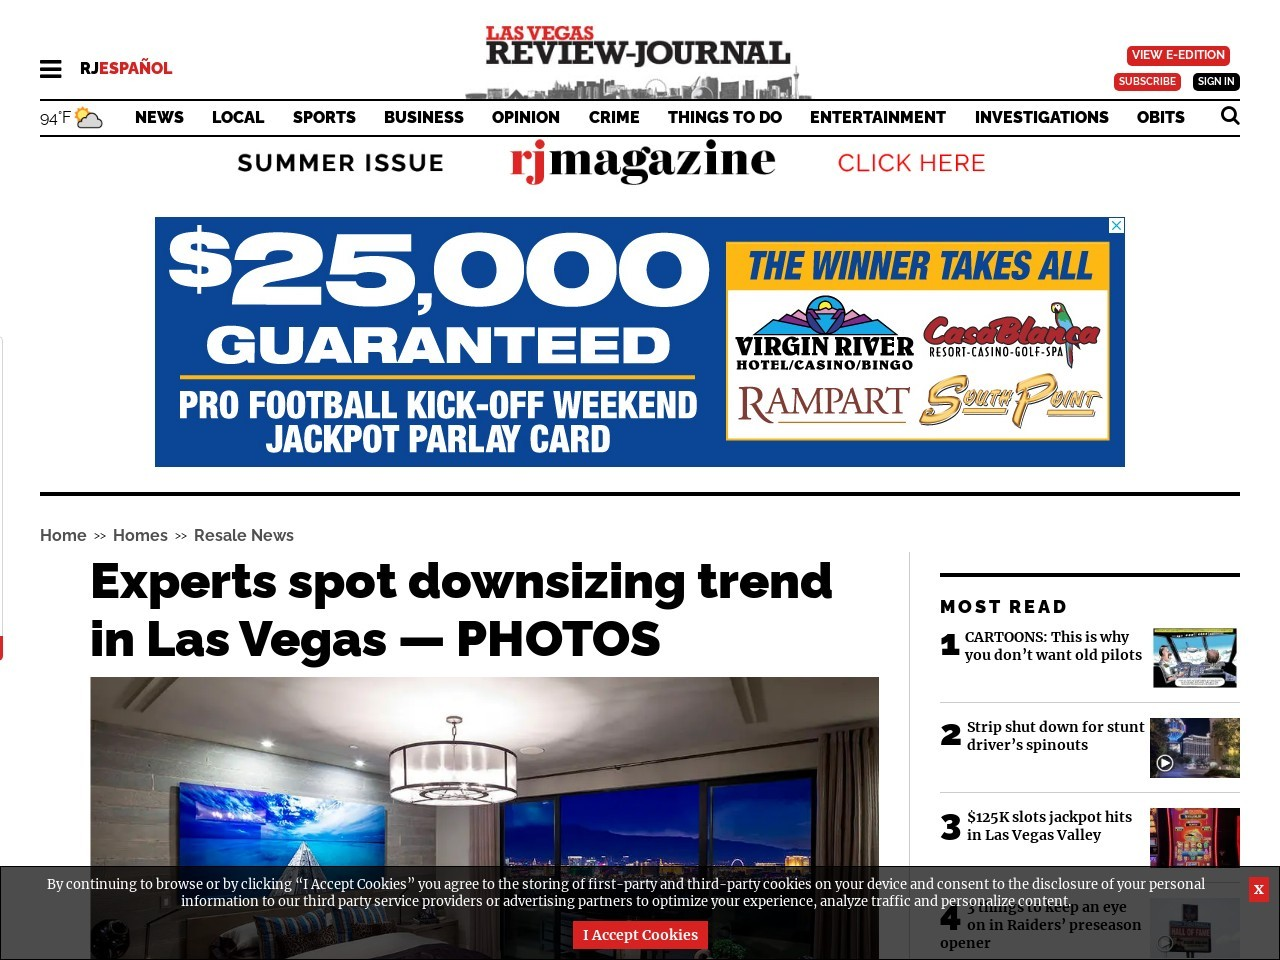 Experts spot downsizing trend in Vegas